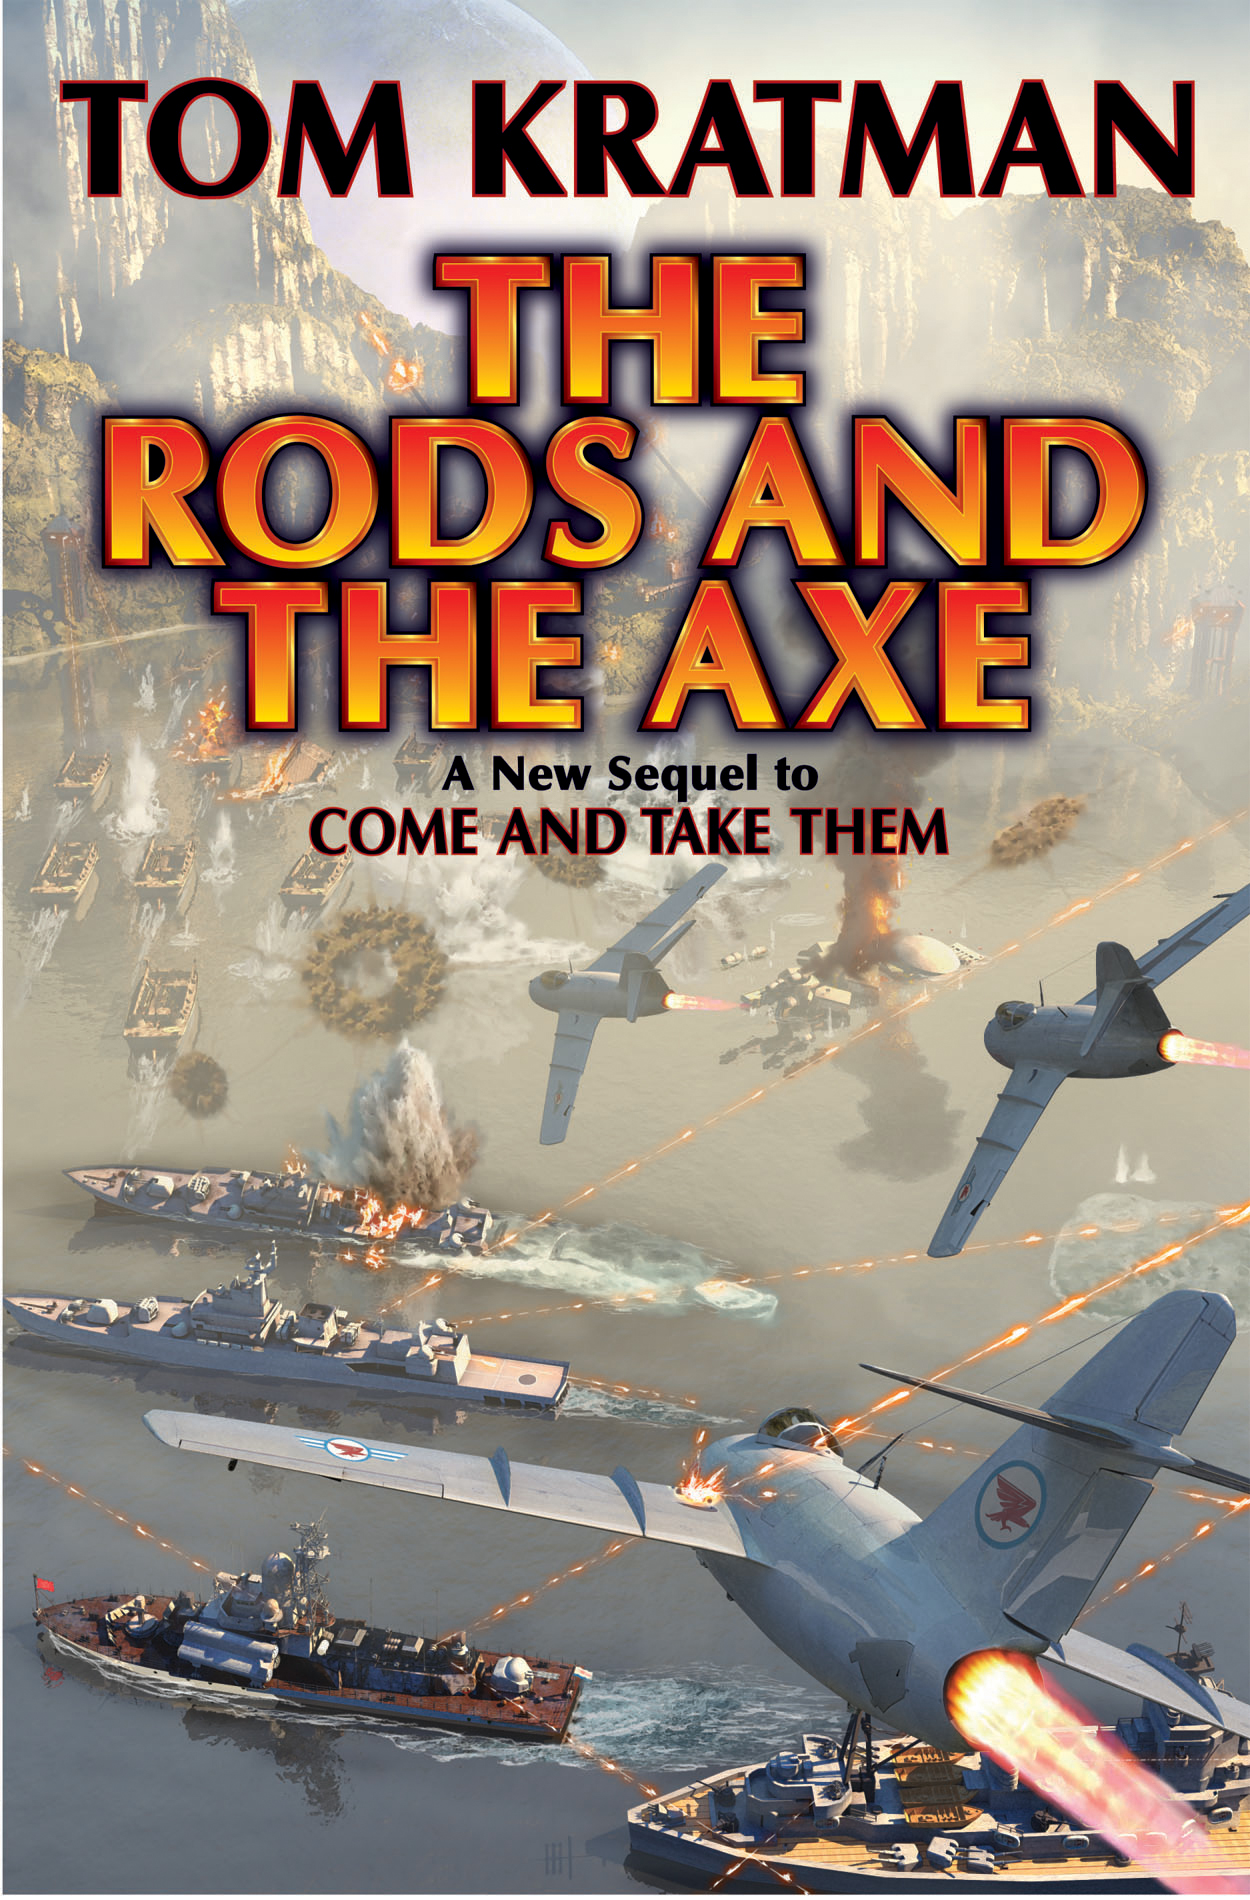 Rods and the axe 9781476736563 hr